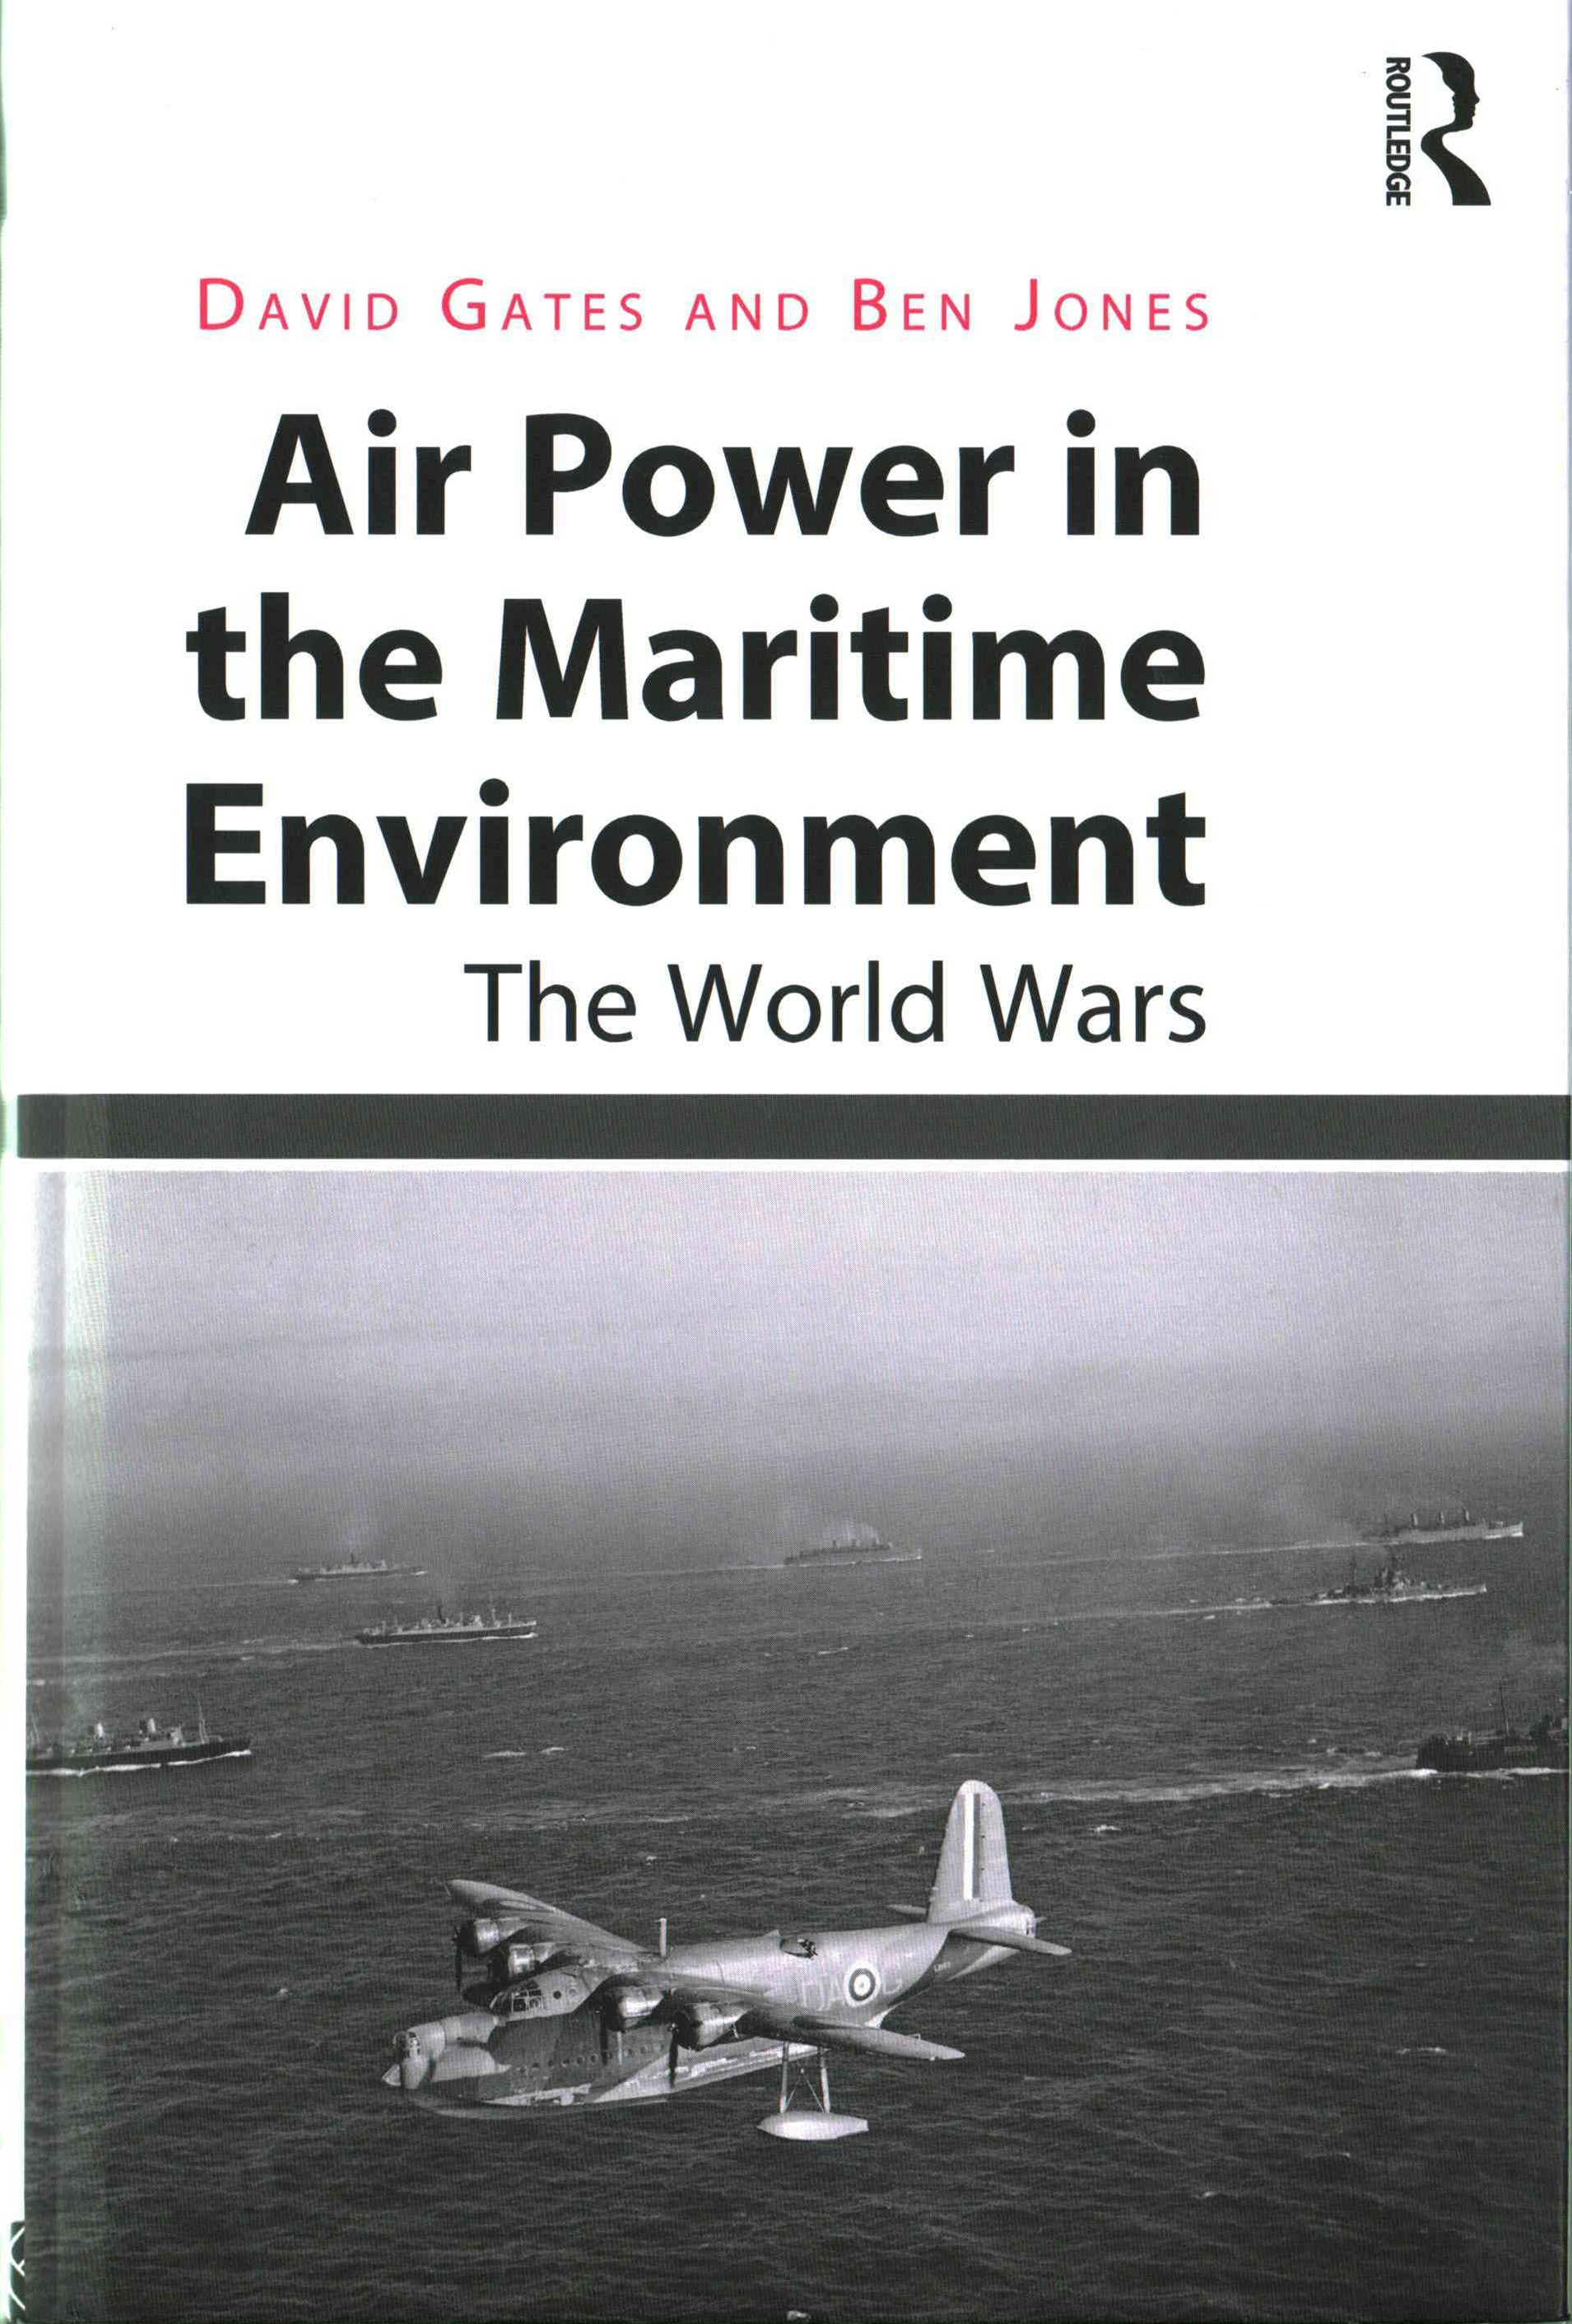 Air Power in the Maritime Environment